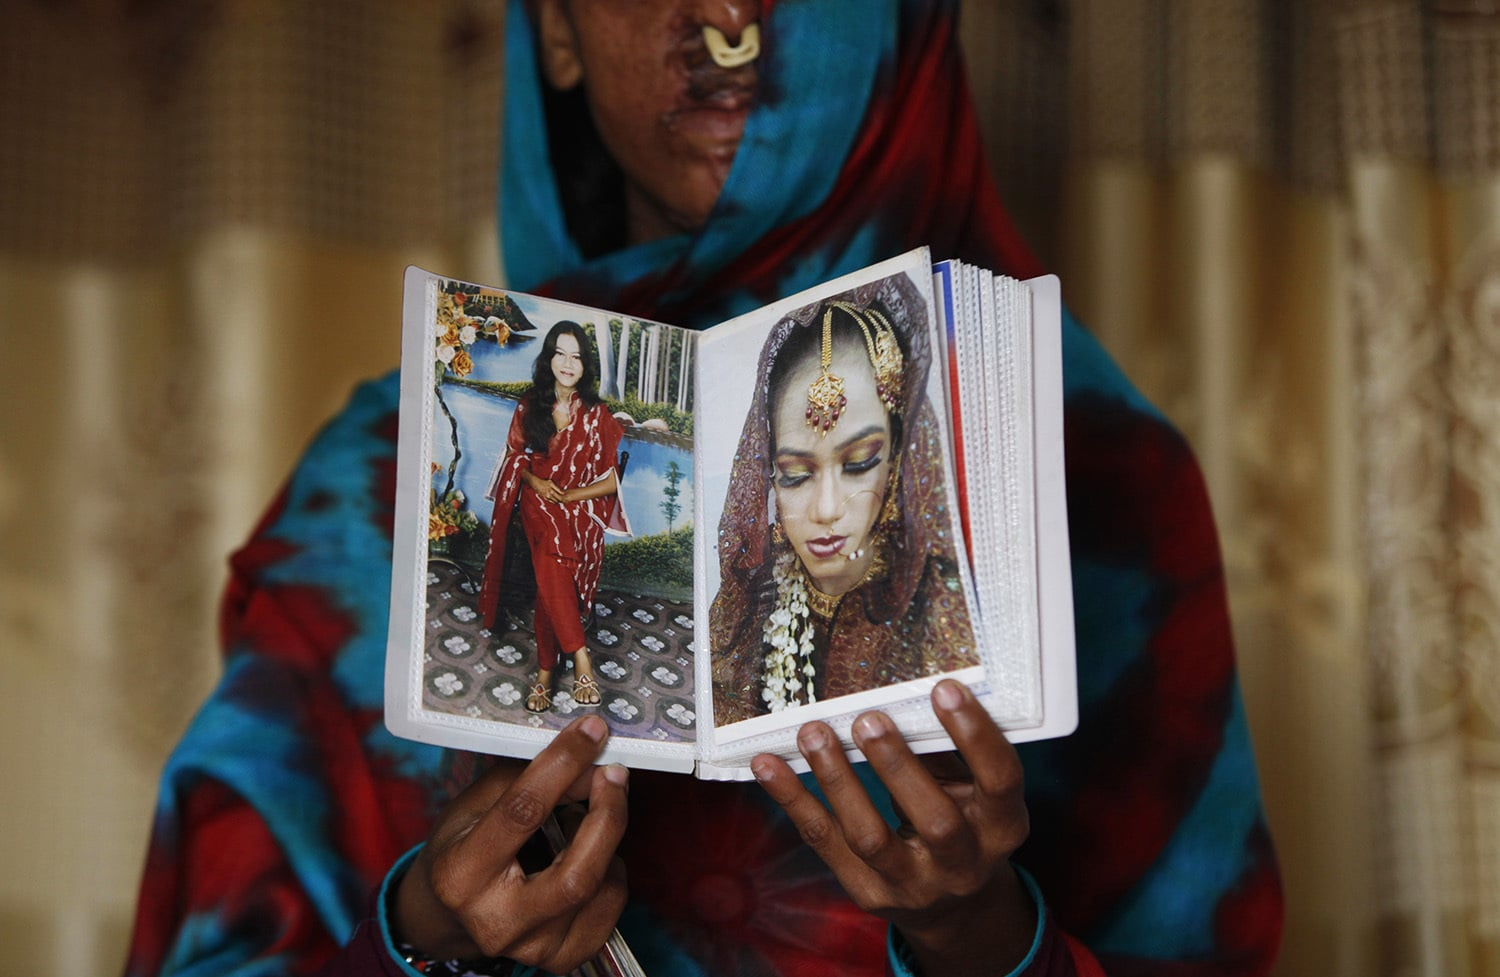 Sidra Kanwal shows pictures of herself before she was disfigured in an acid attack in Karachi, Pakistan.—AP